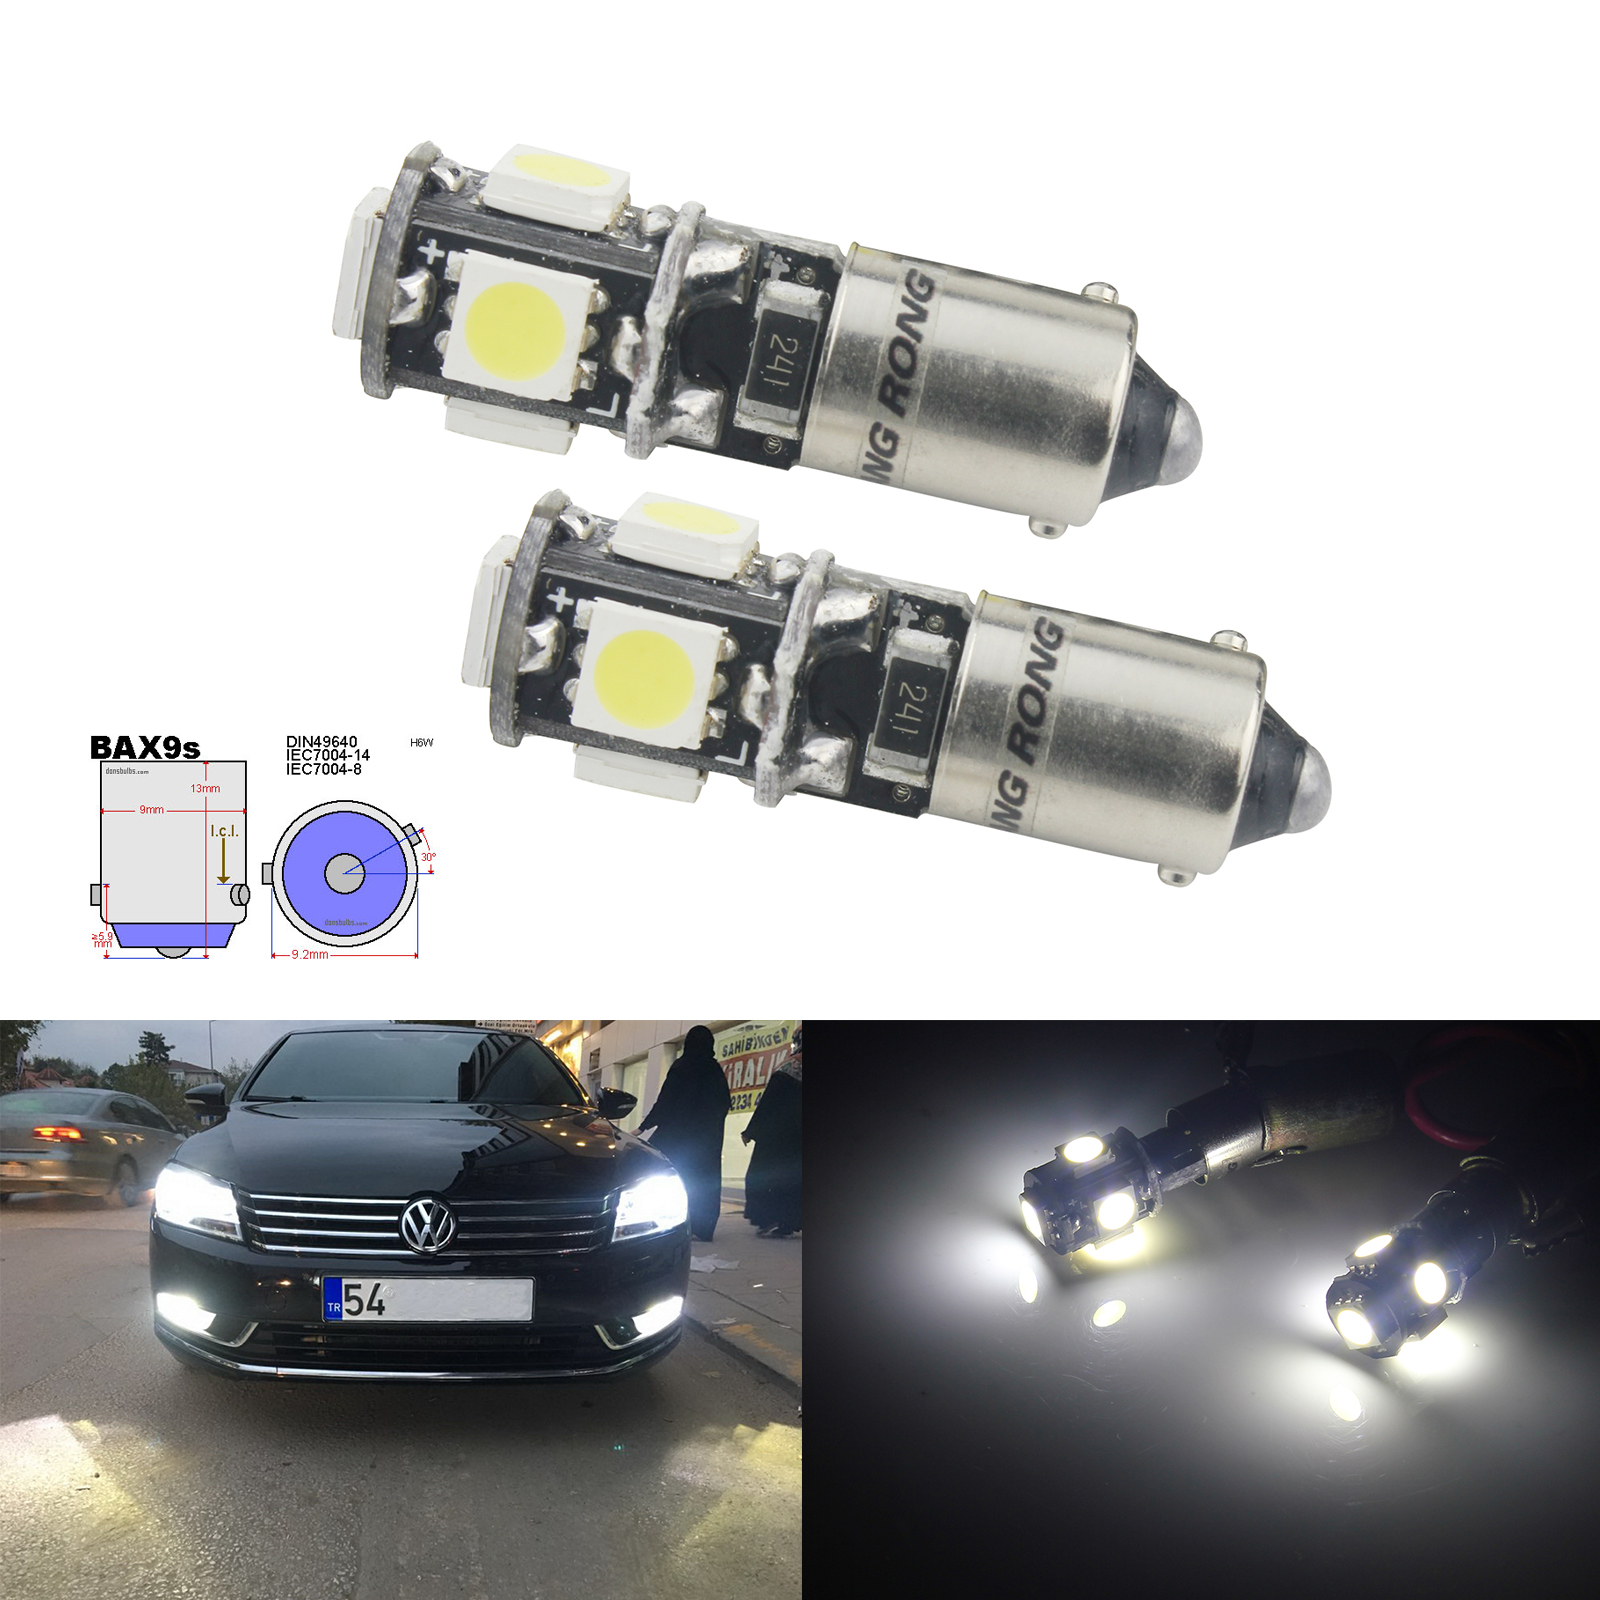 ANGRONG 2X H6W 434 Bax9s Canbus Error Free 5 SMD LED Parking Side Light Bulbs Xenon White